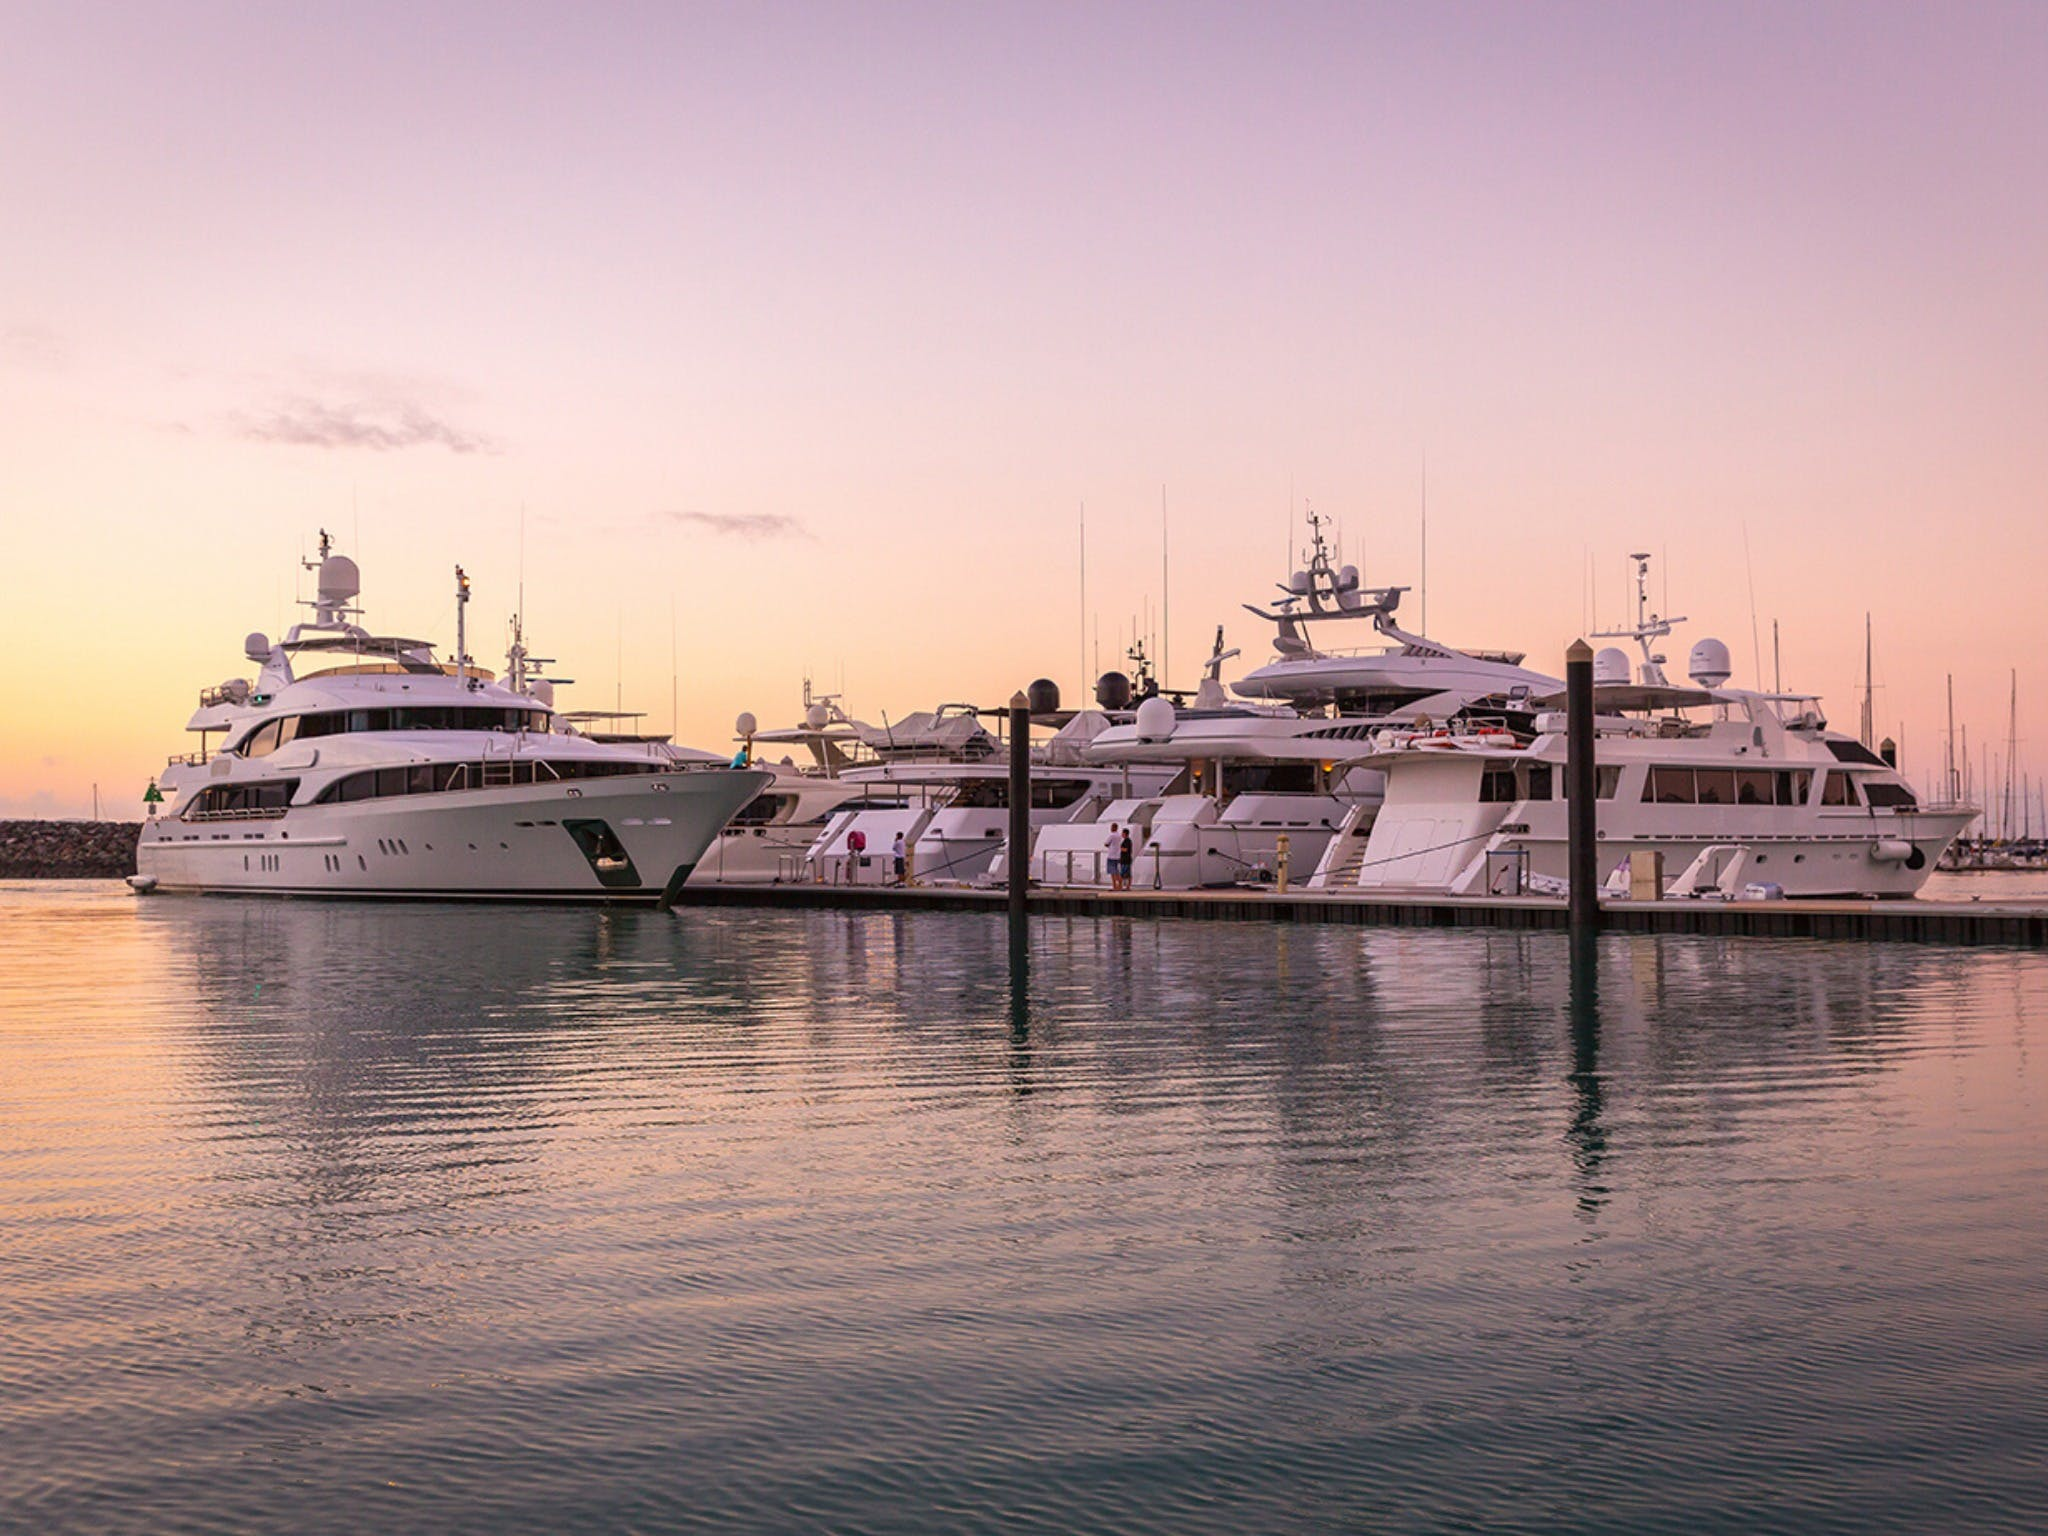 Australian Superyacht Rendezvous - Great Barrier Reef edition - Accommodation Rockhampton